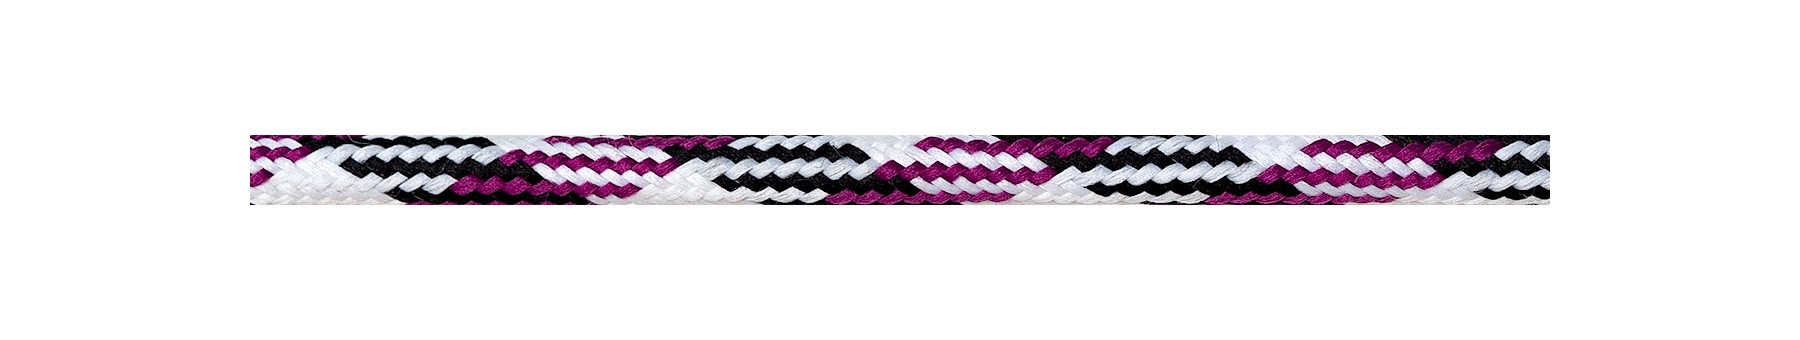 Textile Cable White-Black-Cerise